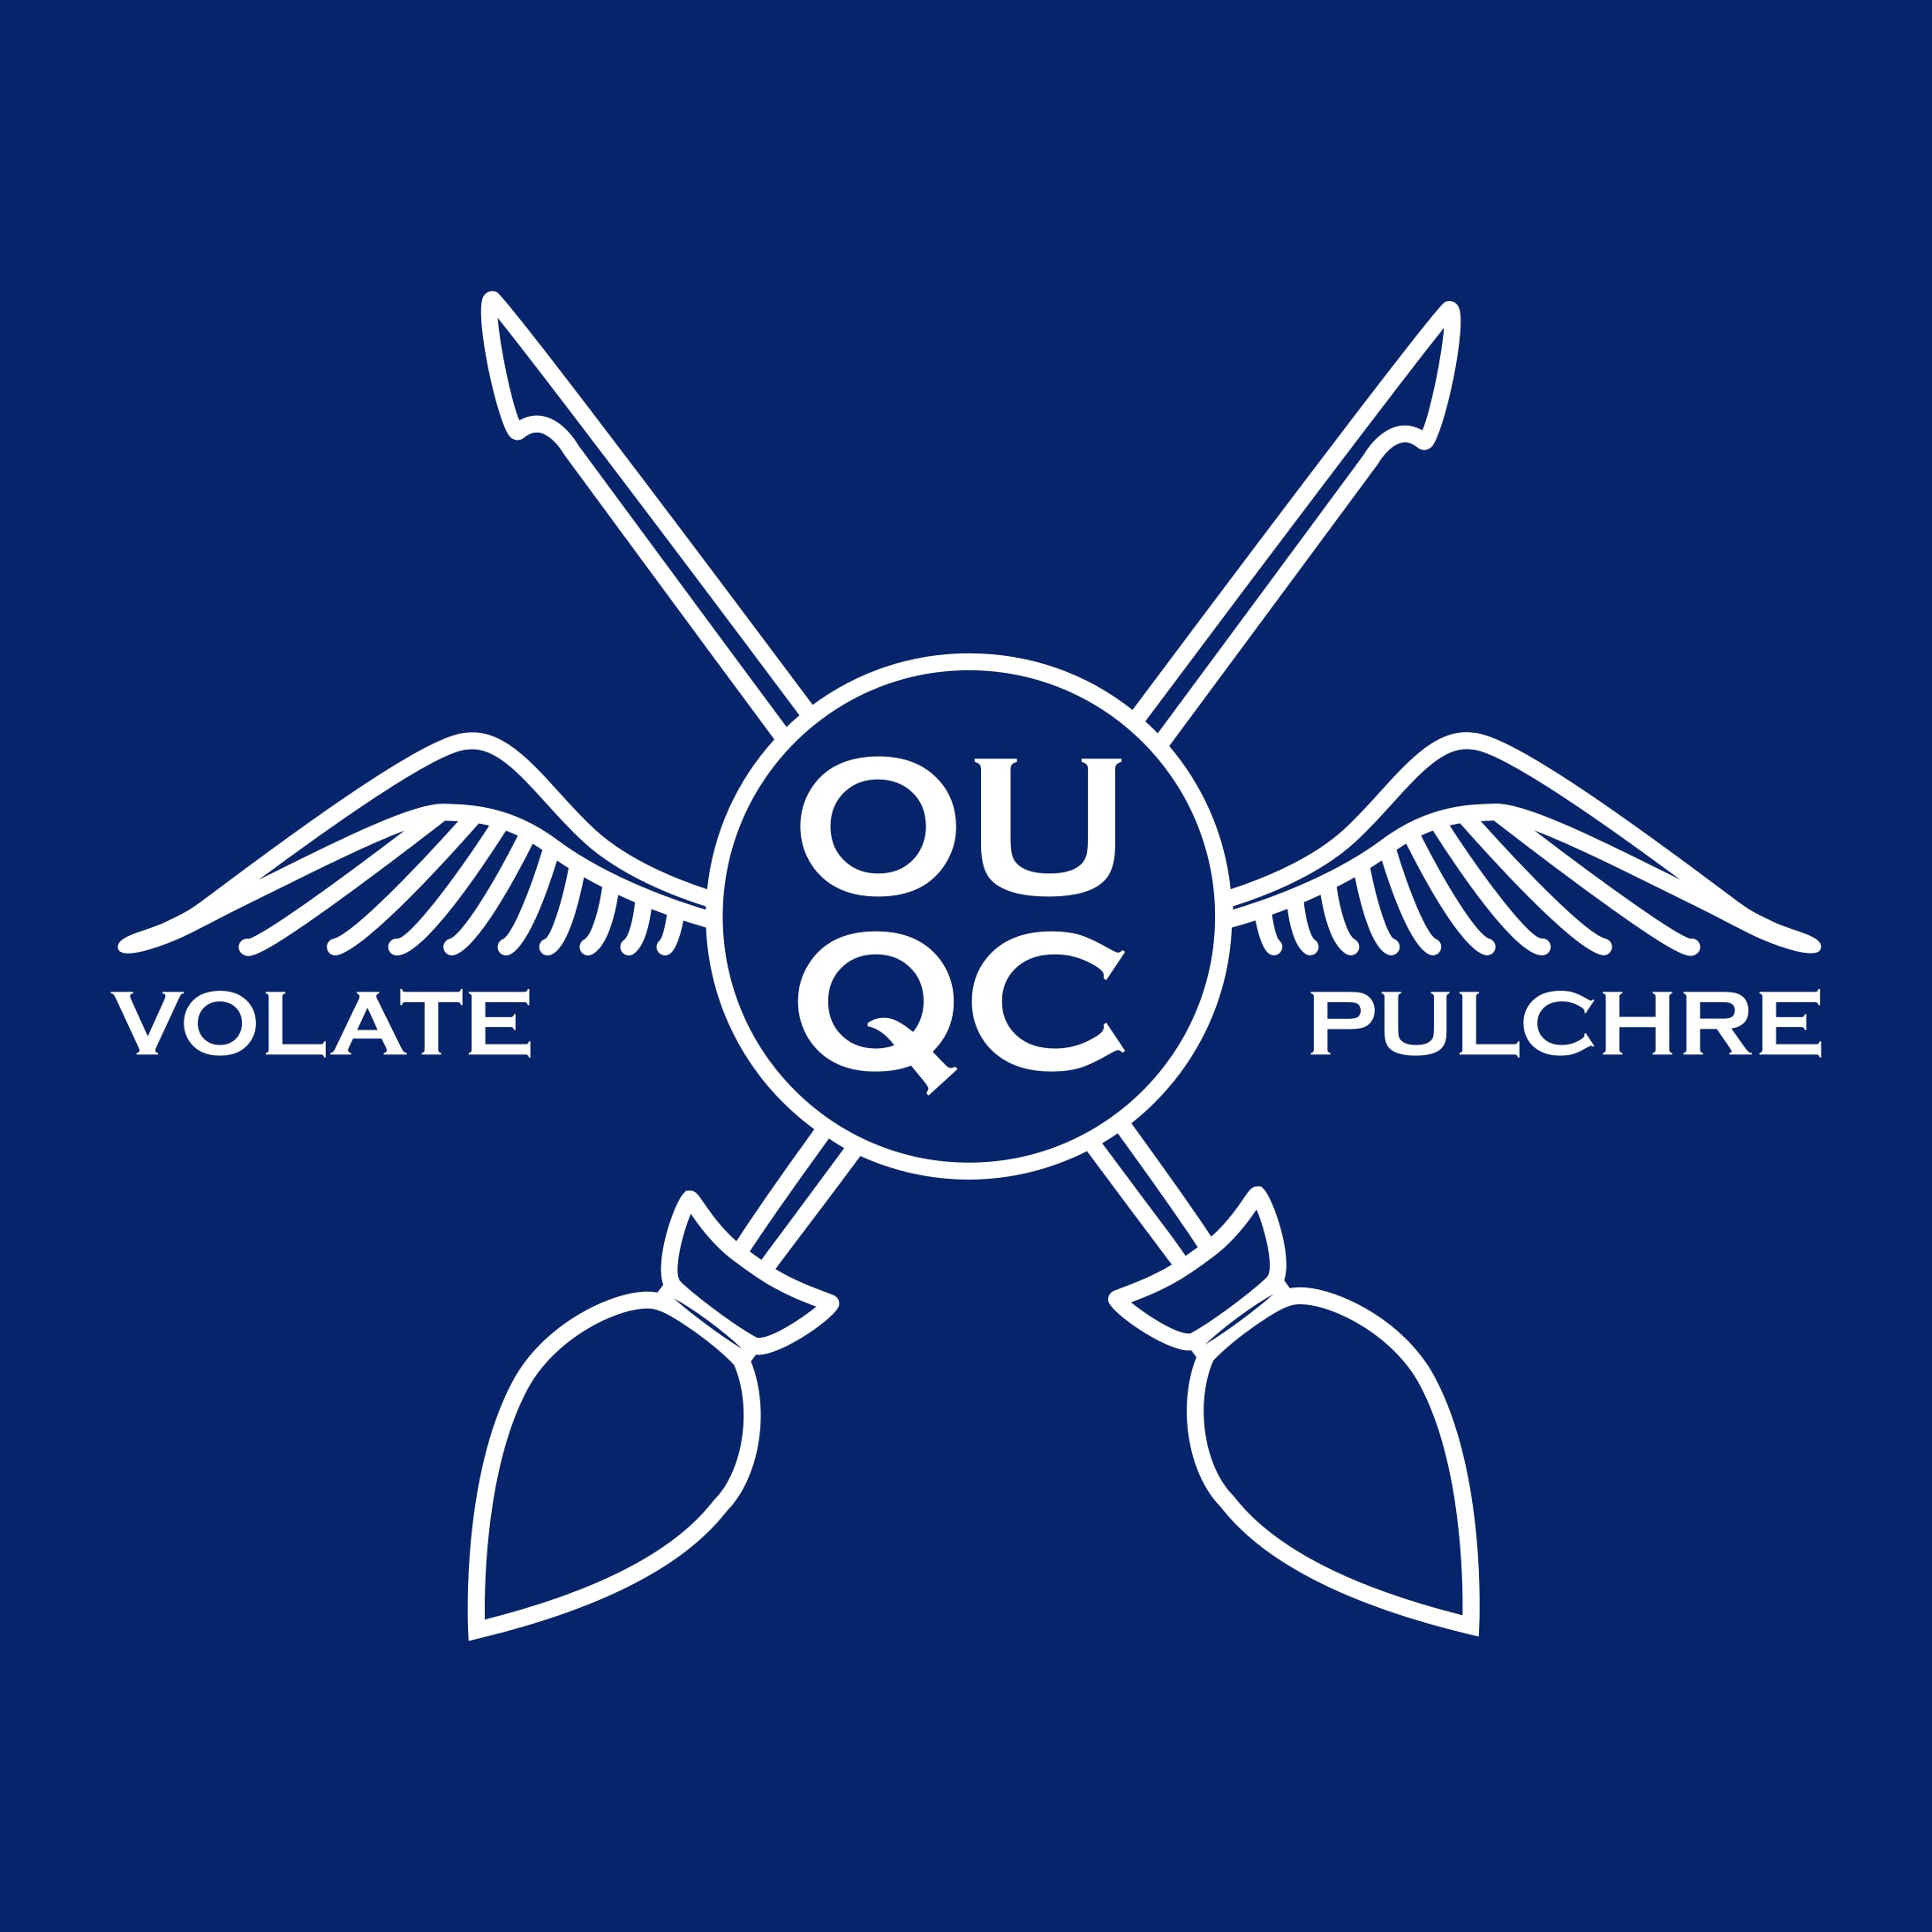 Oxford Universities Quidditch Club logo